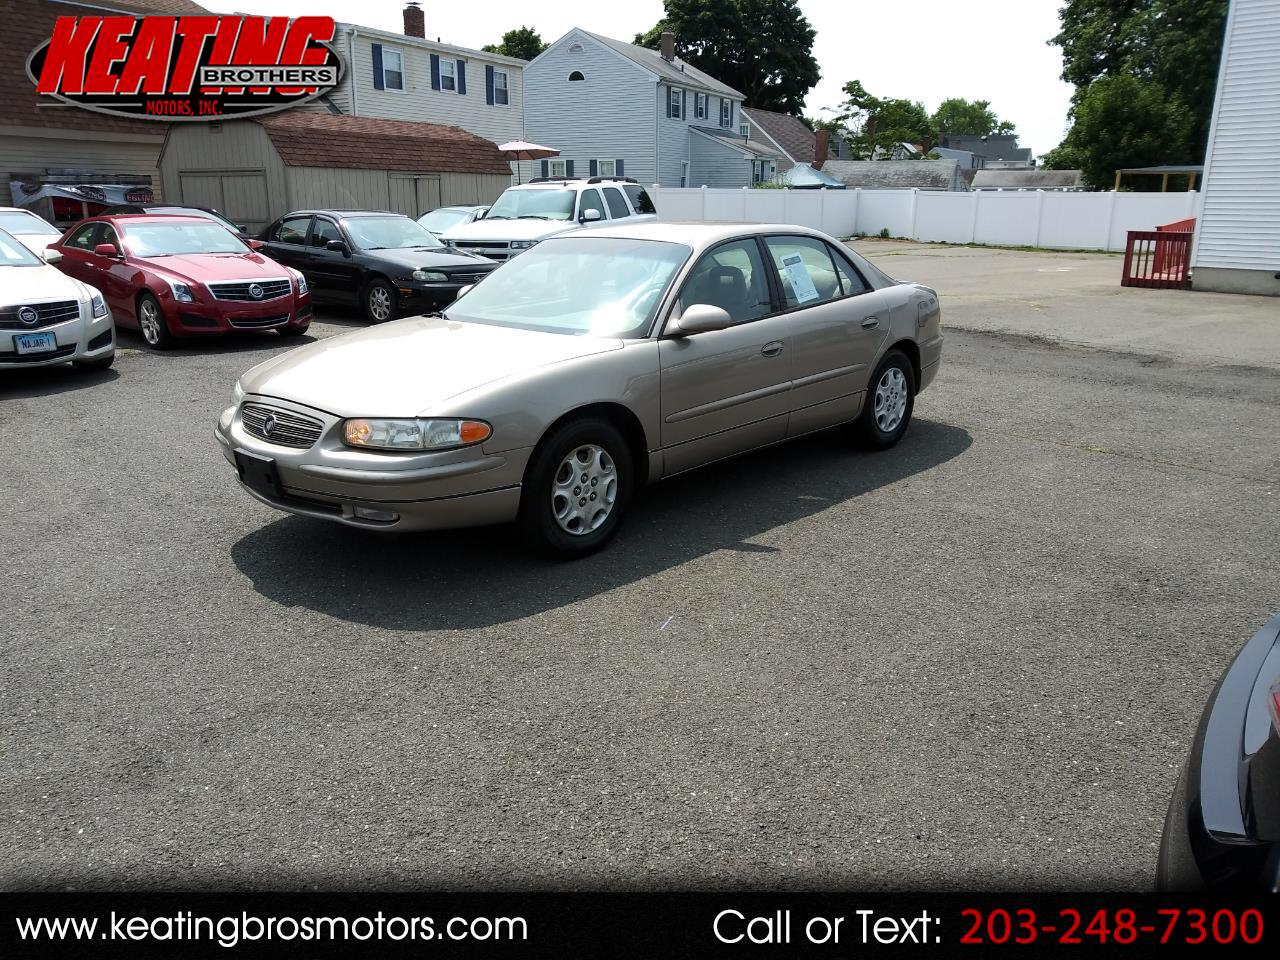 2002 Buick Regal 4dr Sdn LS